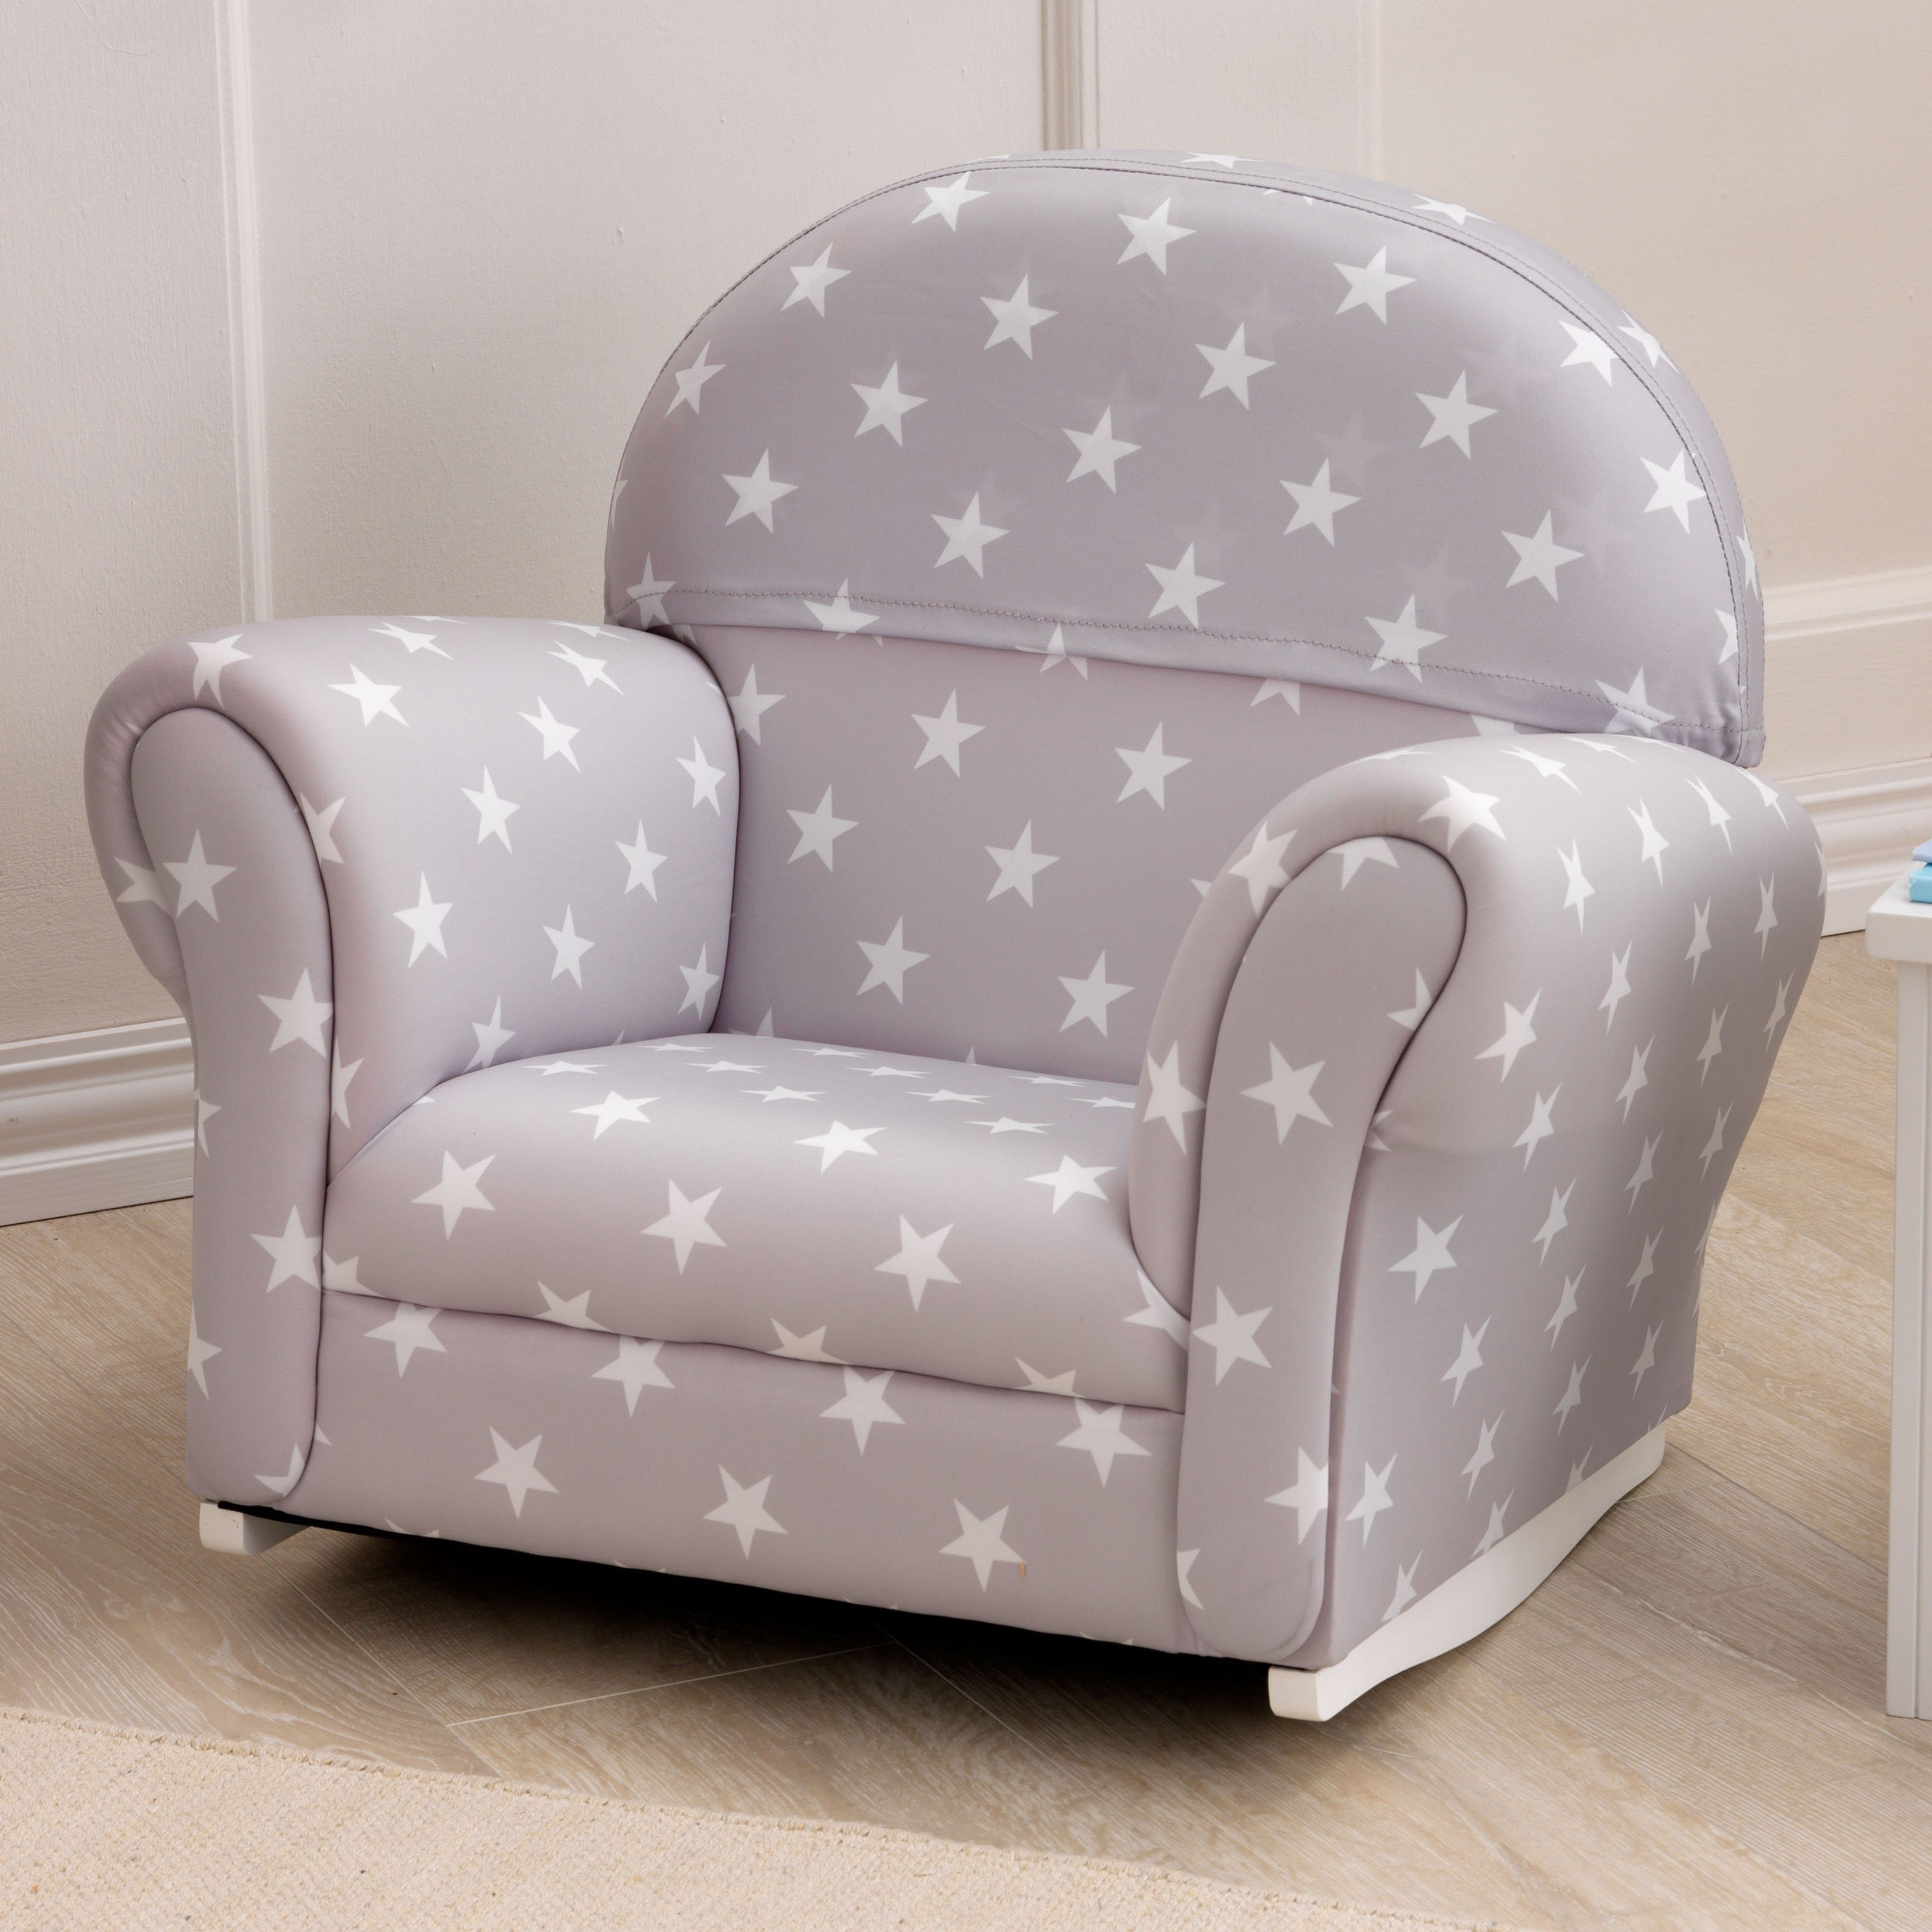 child upholstered chair